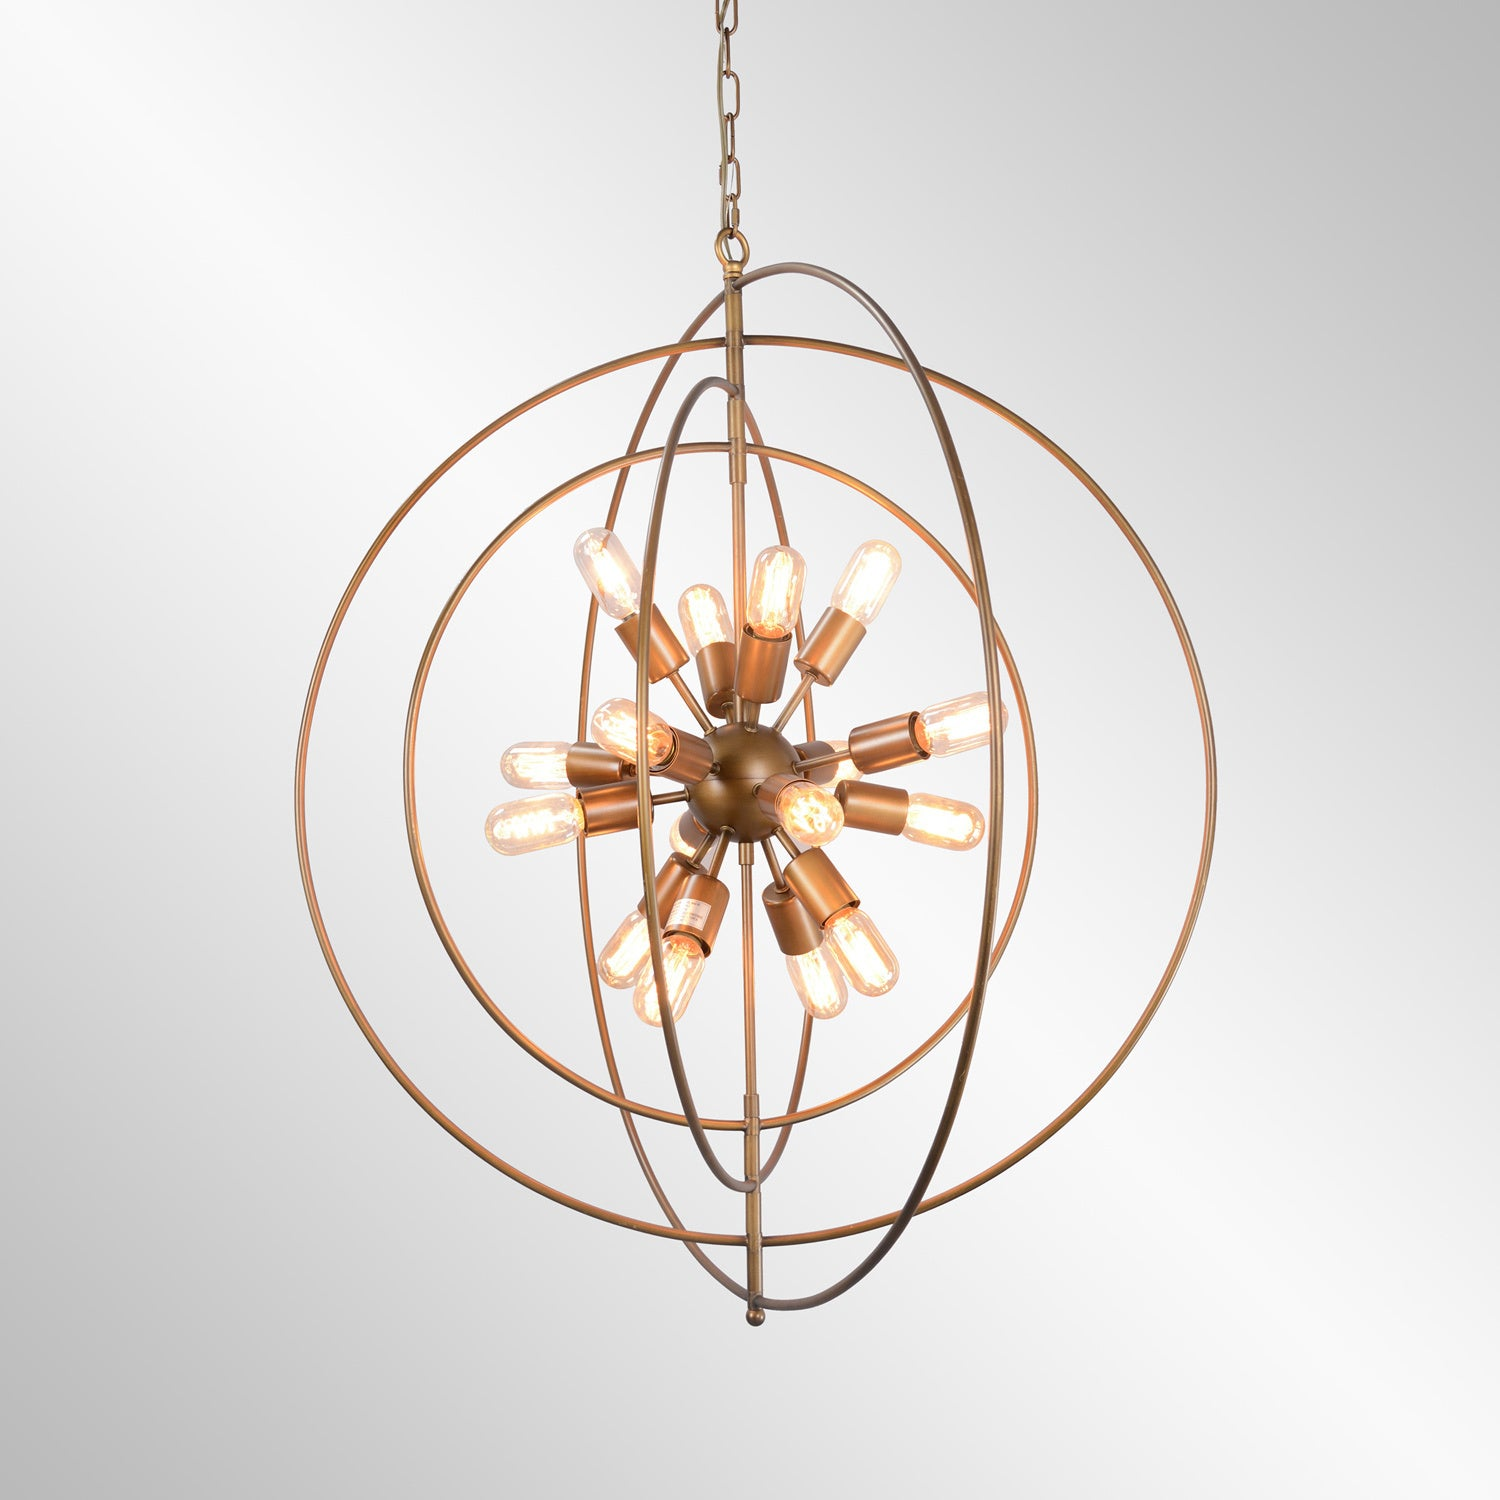 rick orb products bronze s home img chandelier gold lighting black and